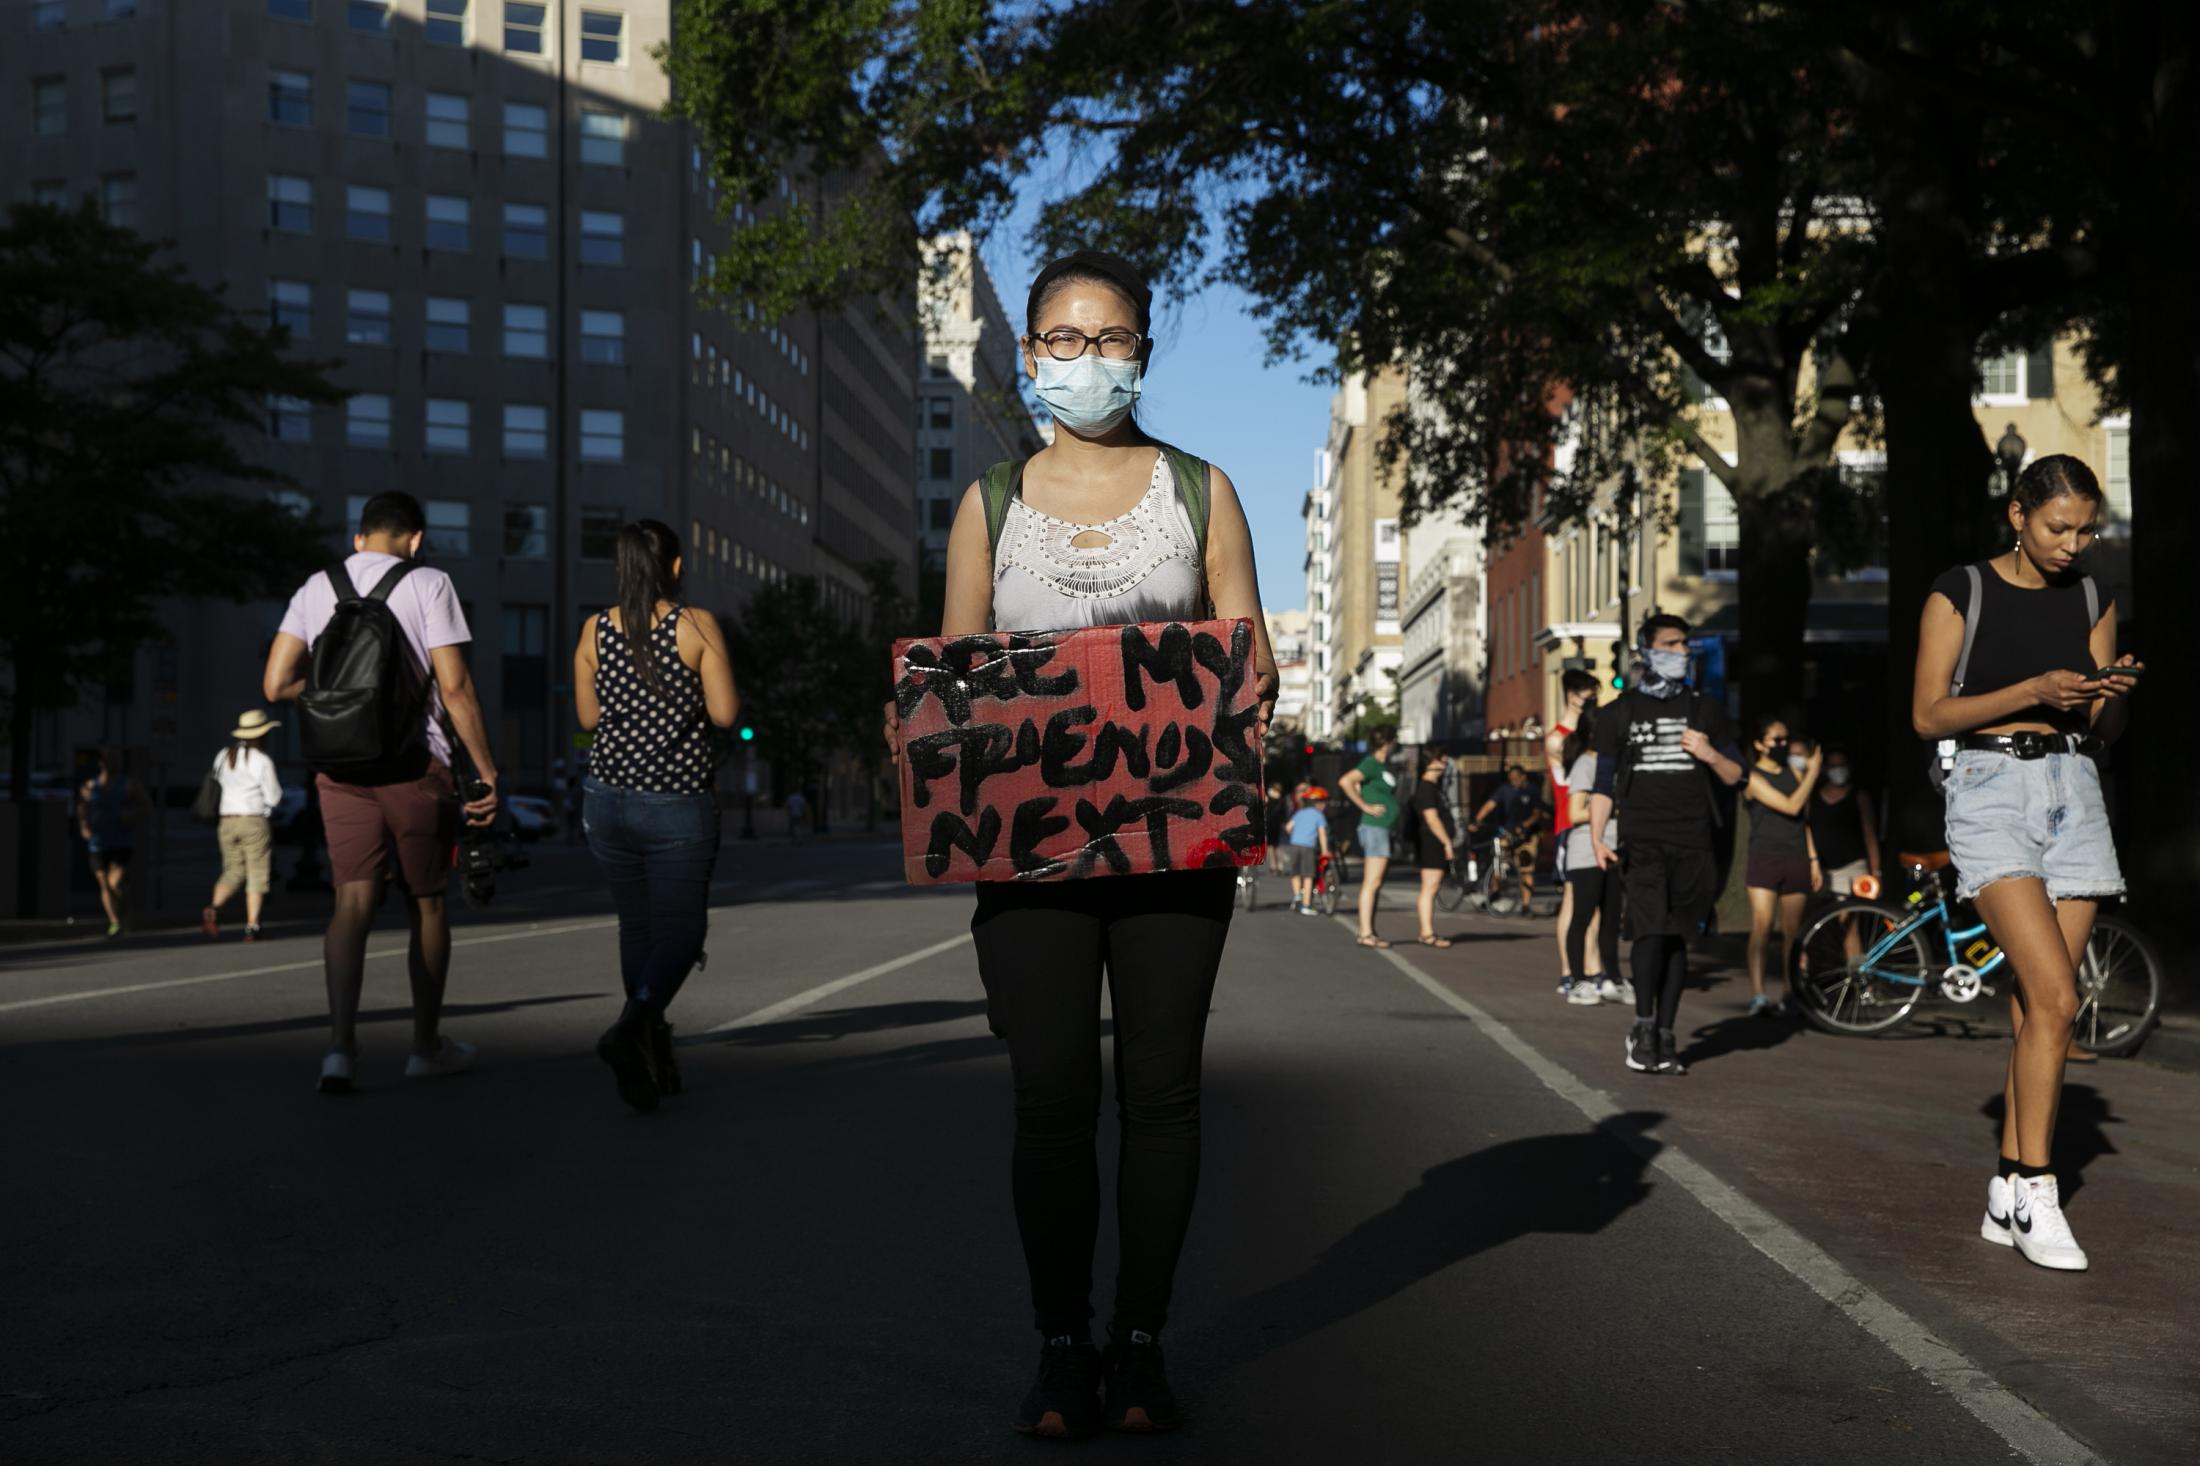 """Intensive Care Unit nurse and a resident of Northern Virginia, Vivian Dang, 28, has been part of the protests for eight to 12 hours every day. She has seen both sides of racism with the COVID-19 towards Asian Americans and the killing of George Floyd. It is difficult for her to see the country still battling with racism in 2020 when she listens to speeches by protestors at the Lincoln Memorial where Martin Luther King Jr. delivered his """"I have a dream"""" speech decades ago. """"A big part of me just wants everyone to be treated equally and have equal access to health care,"""" Vivian says."""